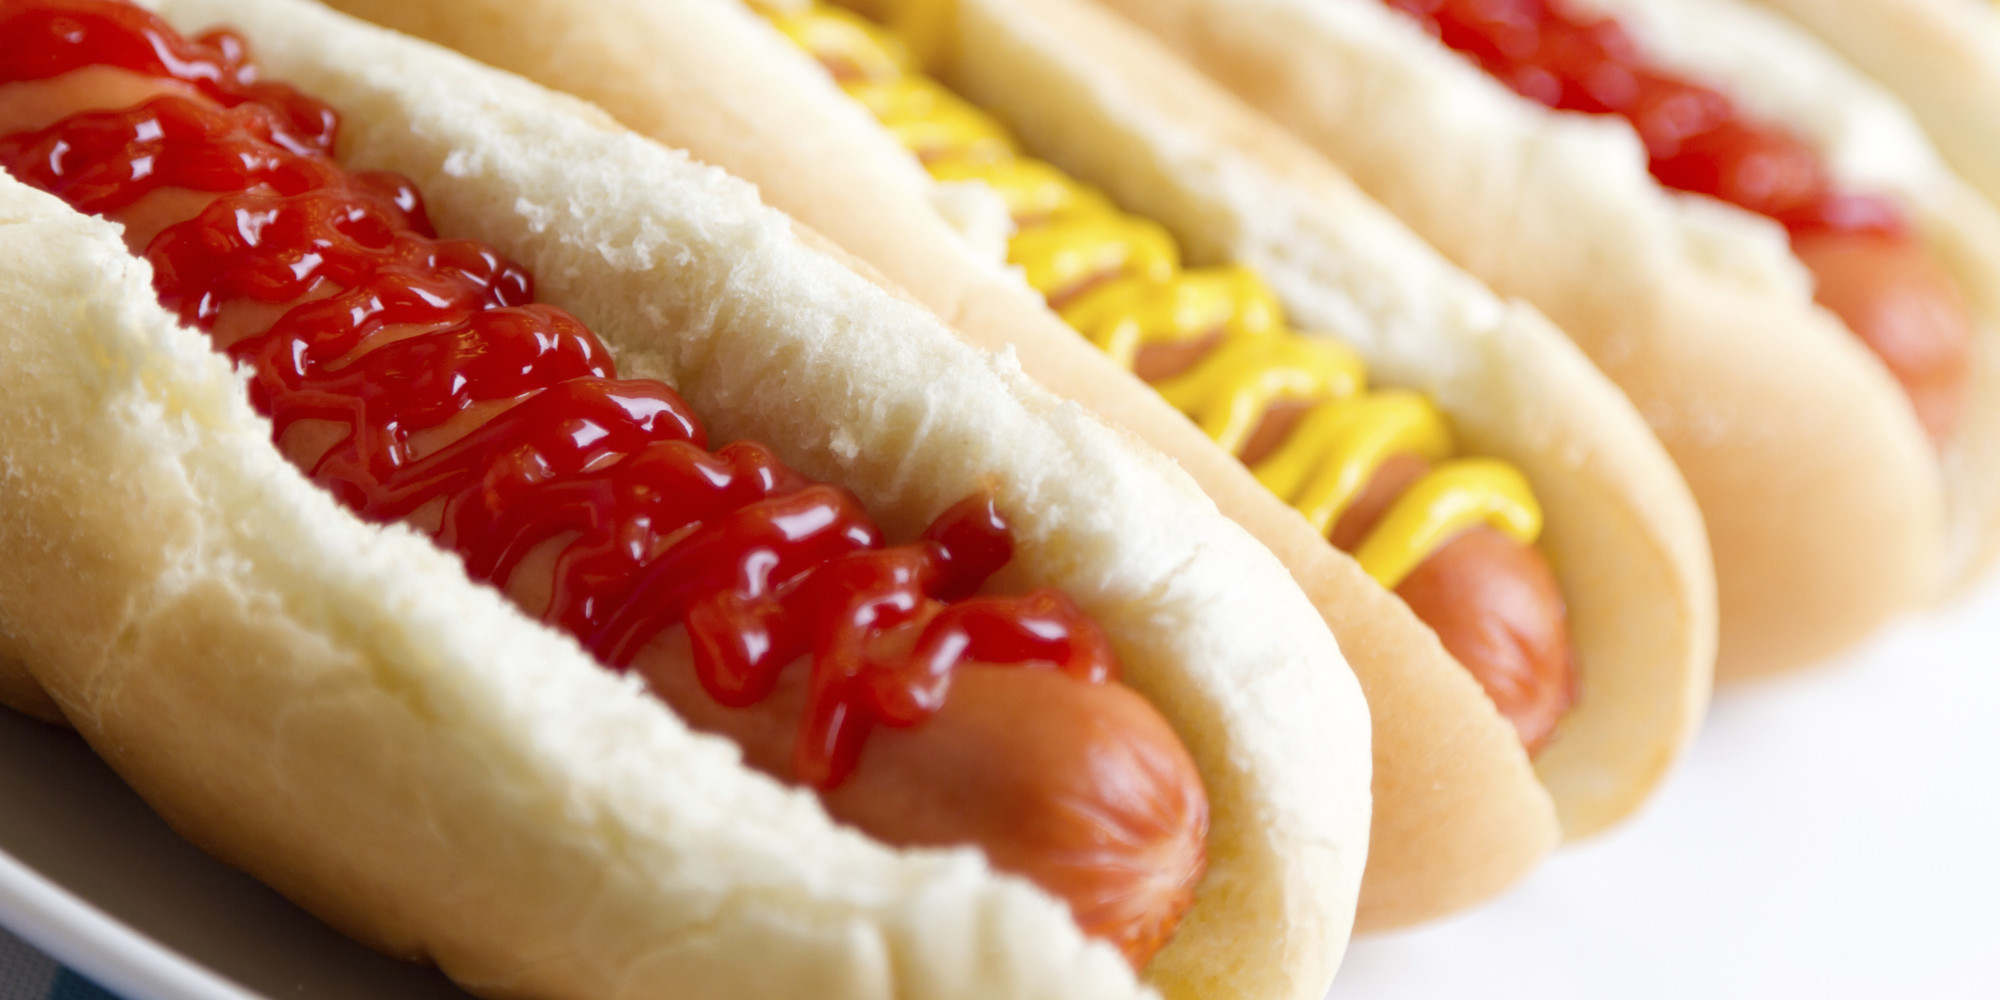 53 National Hot Dog Day 2019 Wallpapers On Wallpapersafari